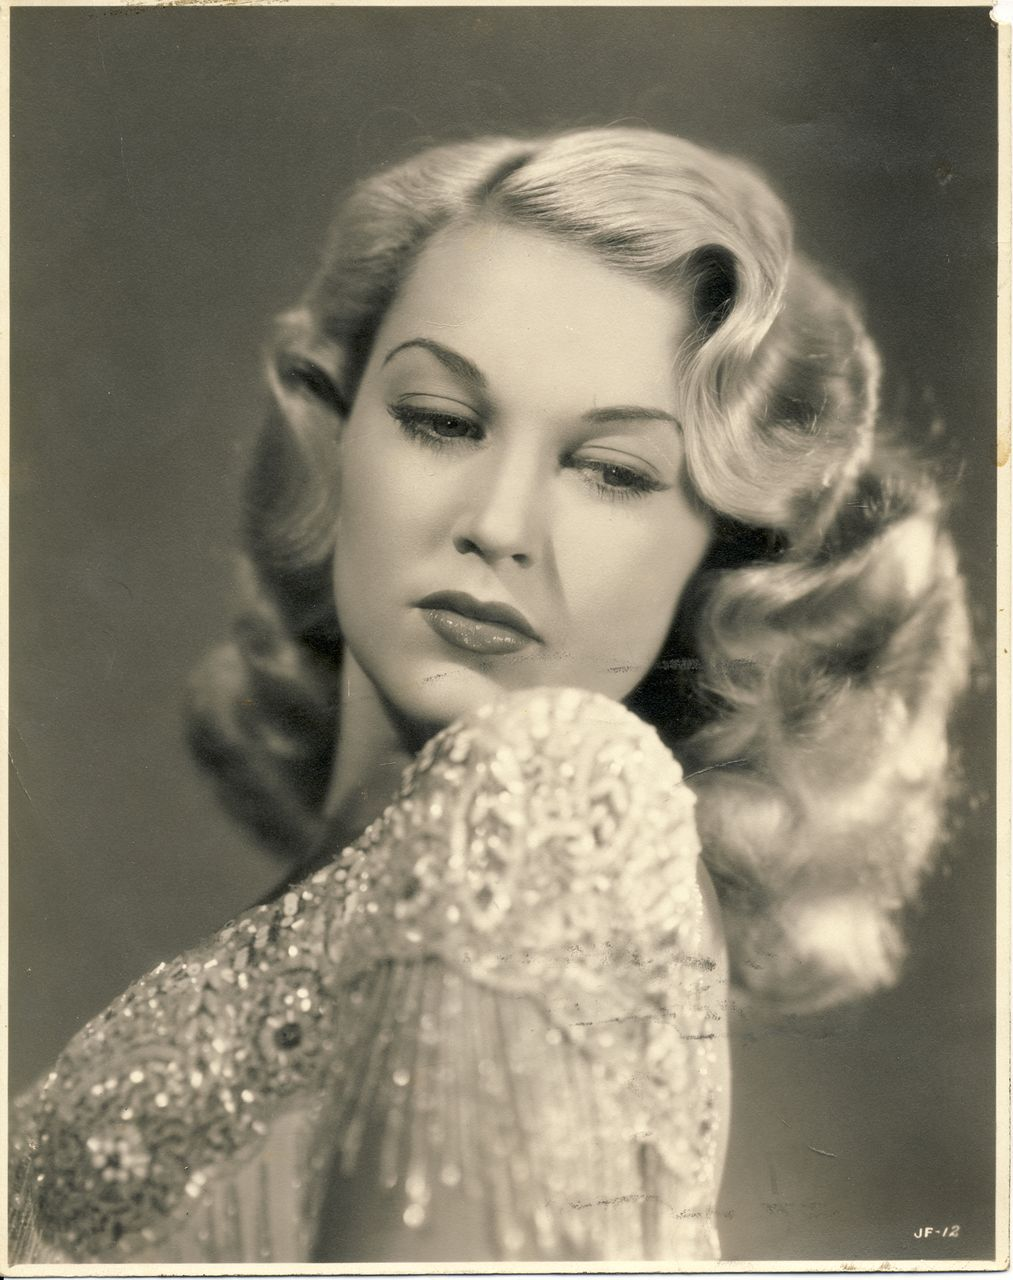 unknown 1940's blonde bombshell